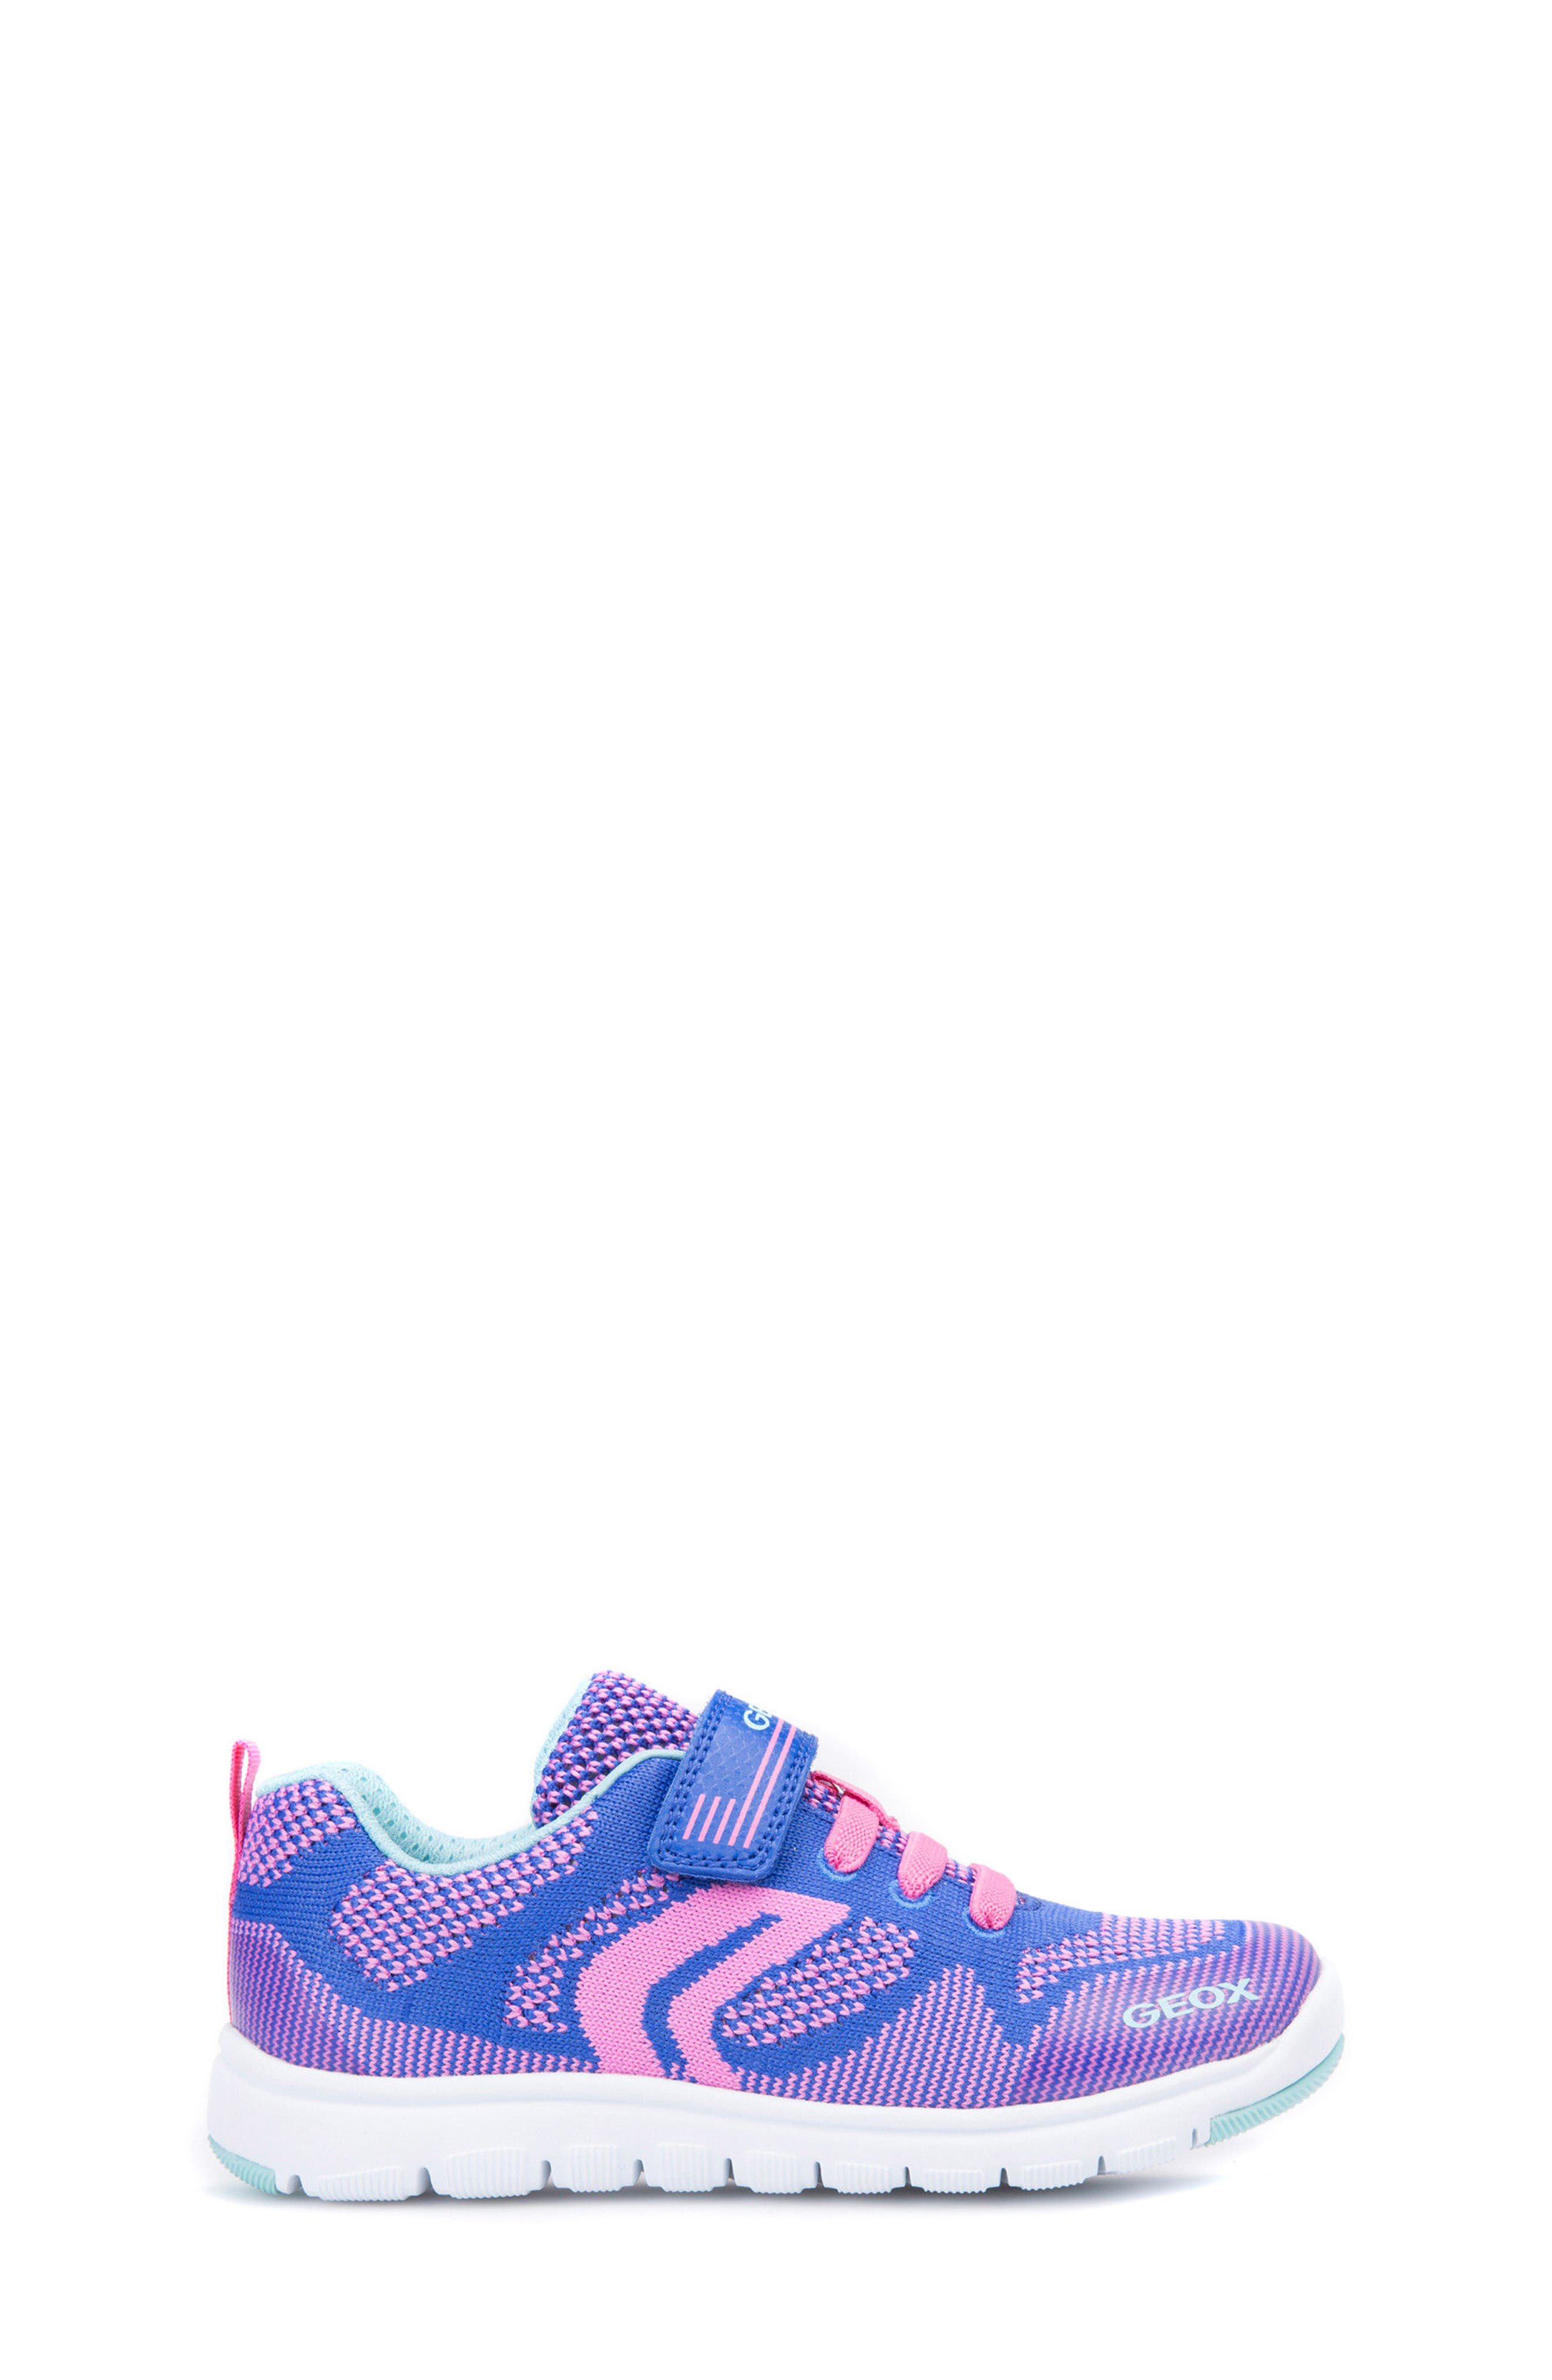 Xunday Low Top Woven Sneaker,                             Alternate thumbnail 6, color,